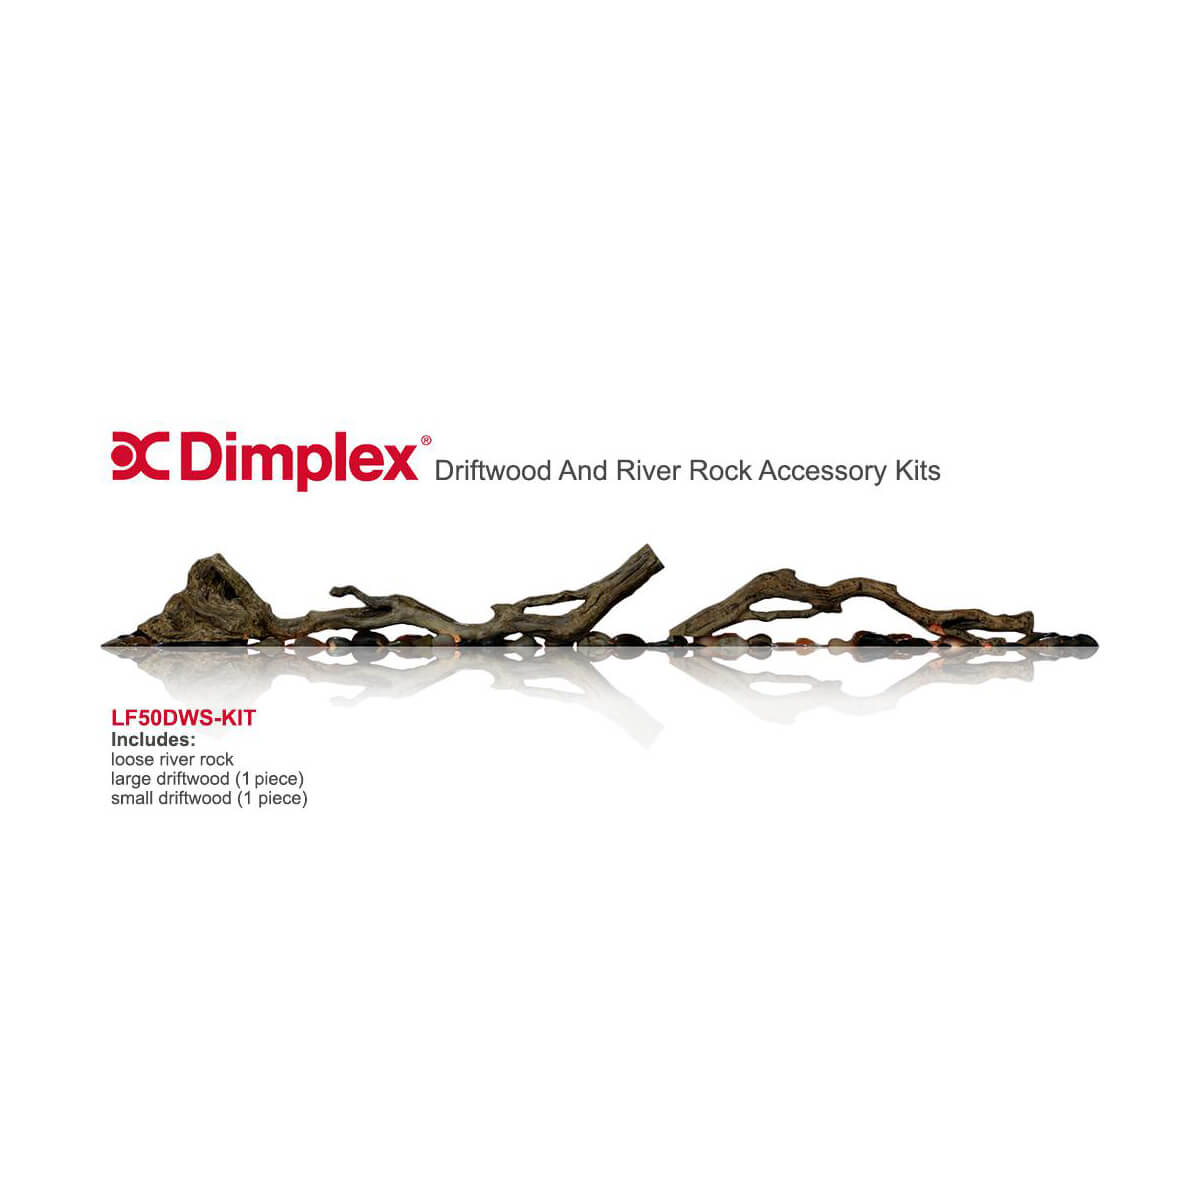 Dimplex Driftwood & River Rock Accessory Kit for 50